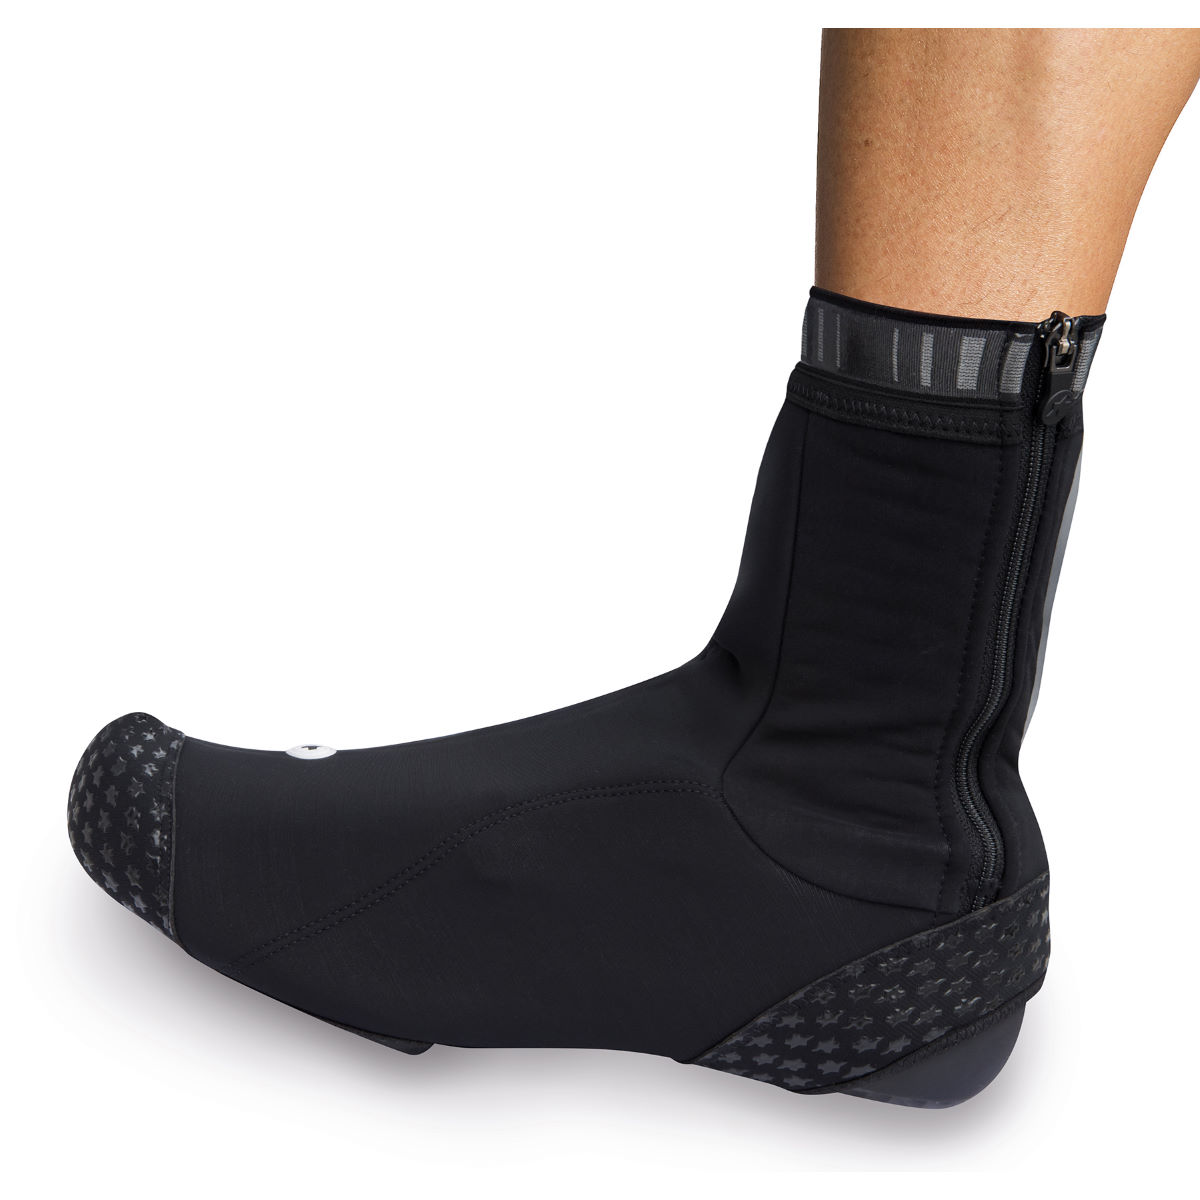 Assos Winterbooties_S7 - Cubrezapatillas